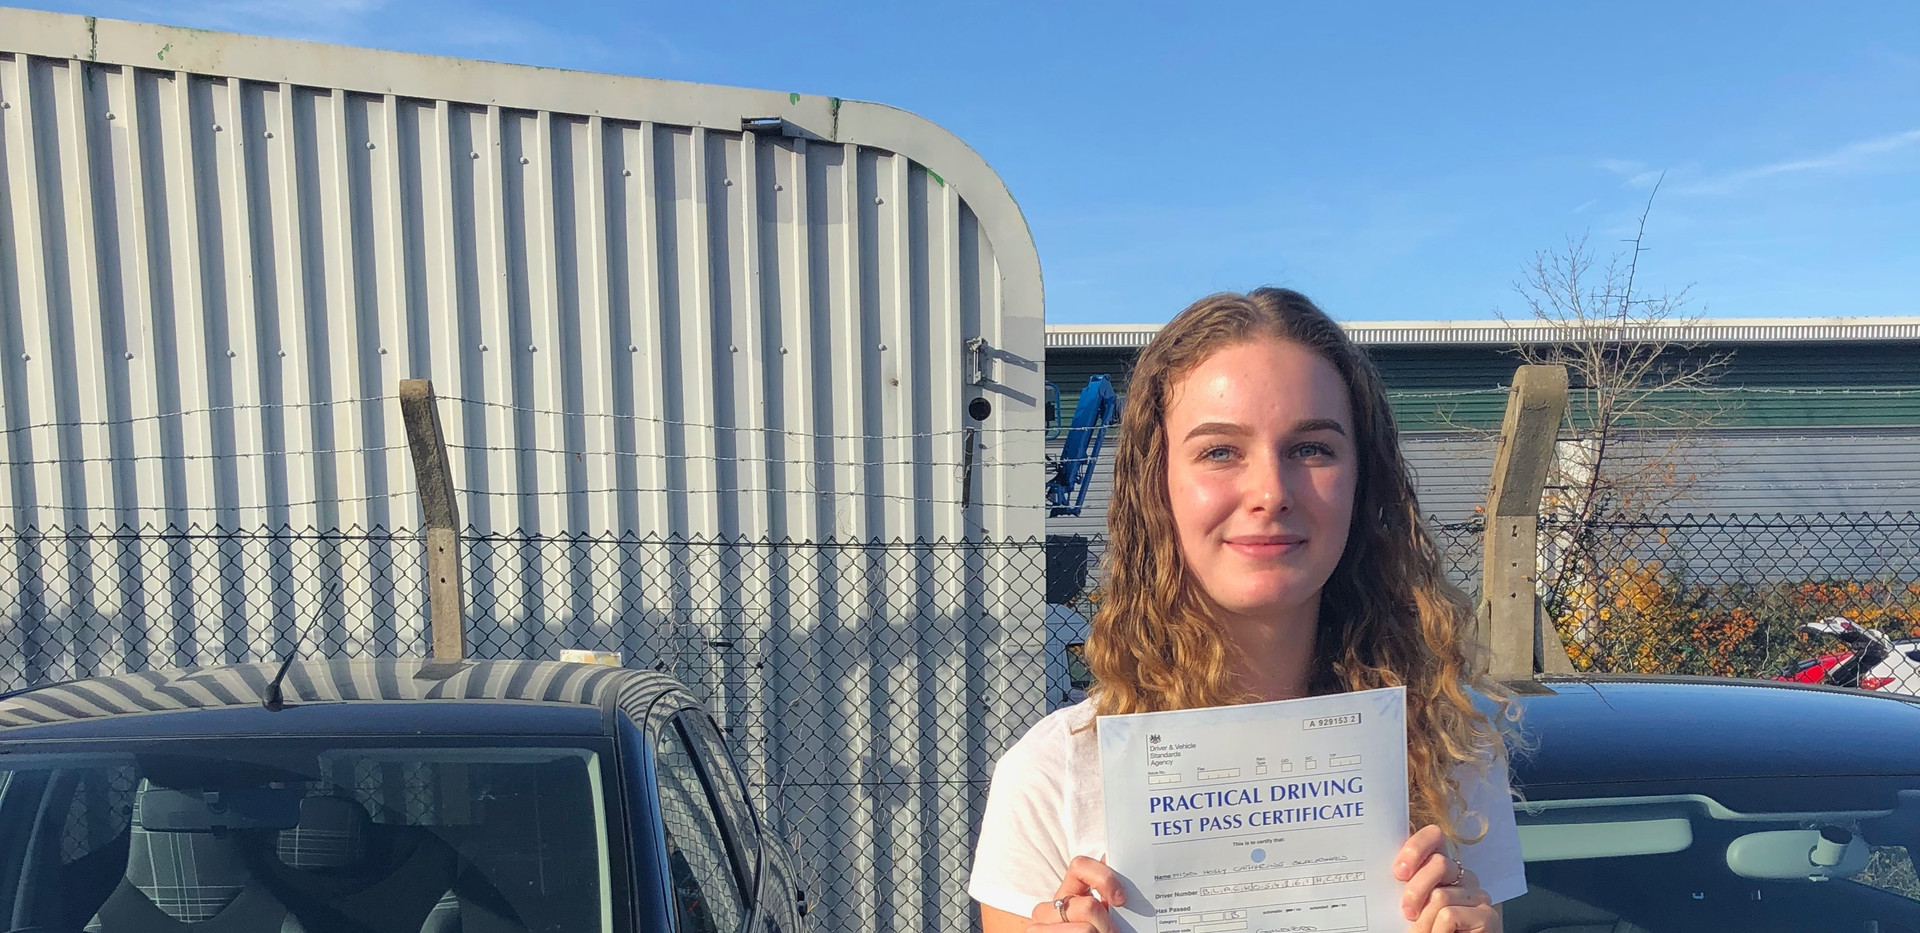 Liphook driving school lesson student - Holly Blackshaw